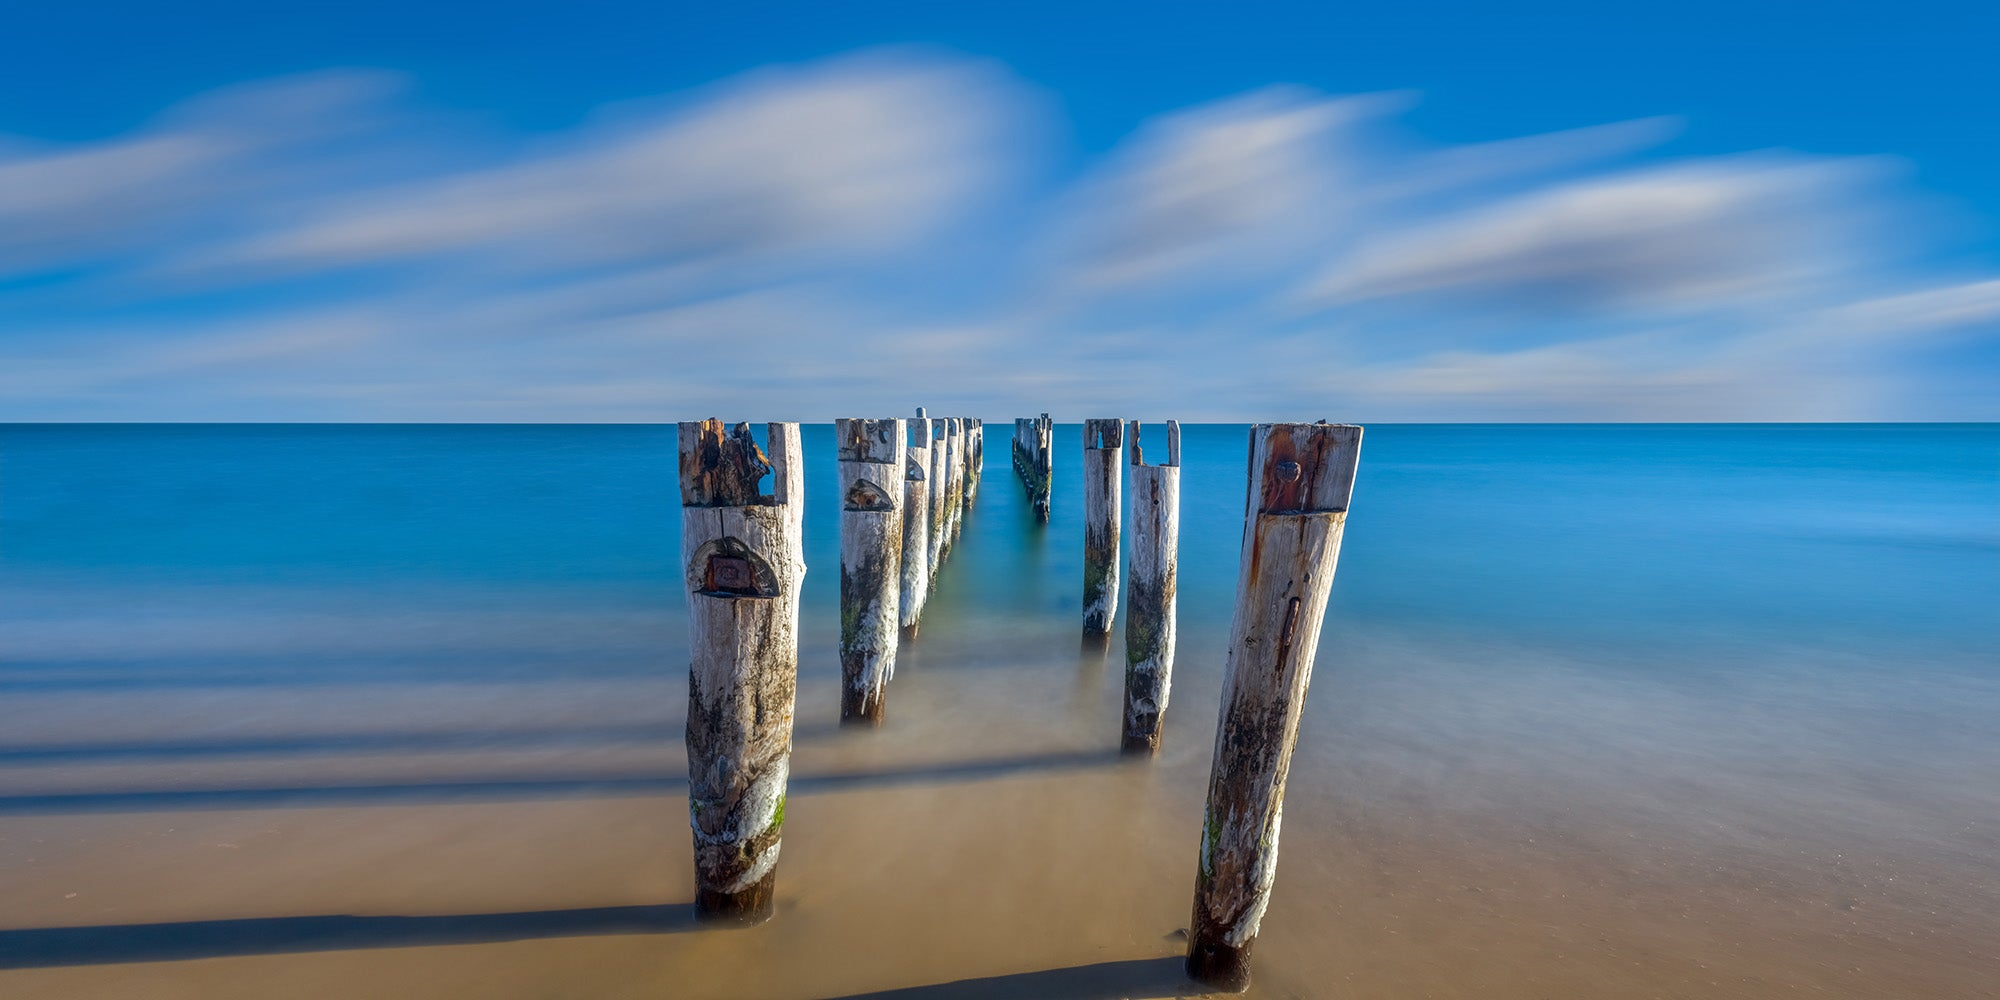 Landscape wall art photography of decaying pilings during an afternoon at Bristol Beach in Falmouth, Cape Cod